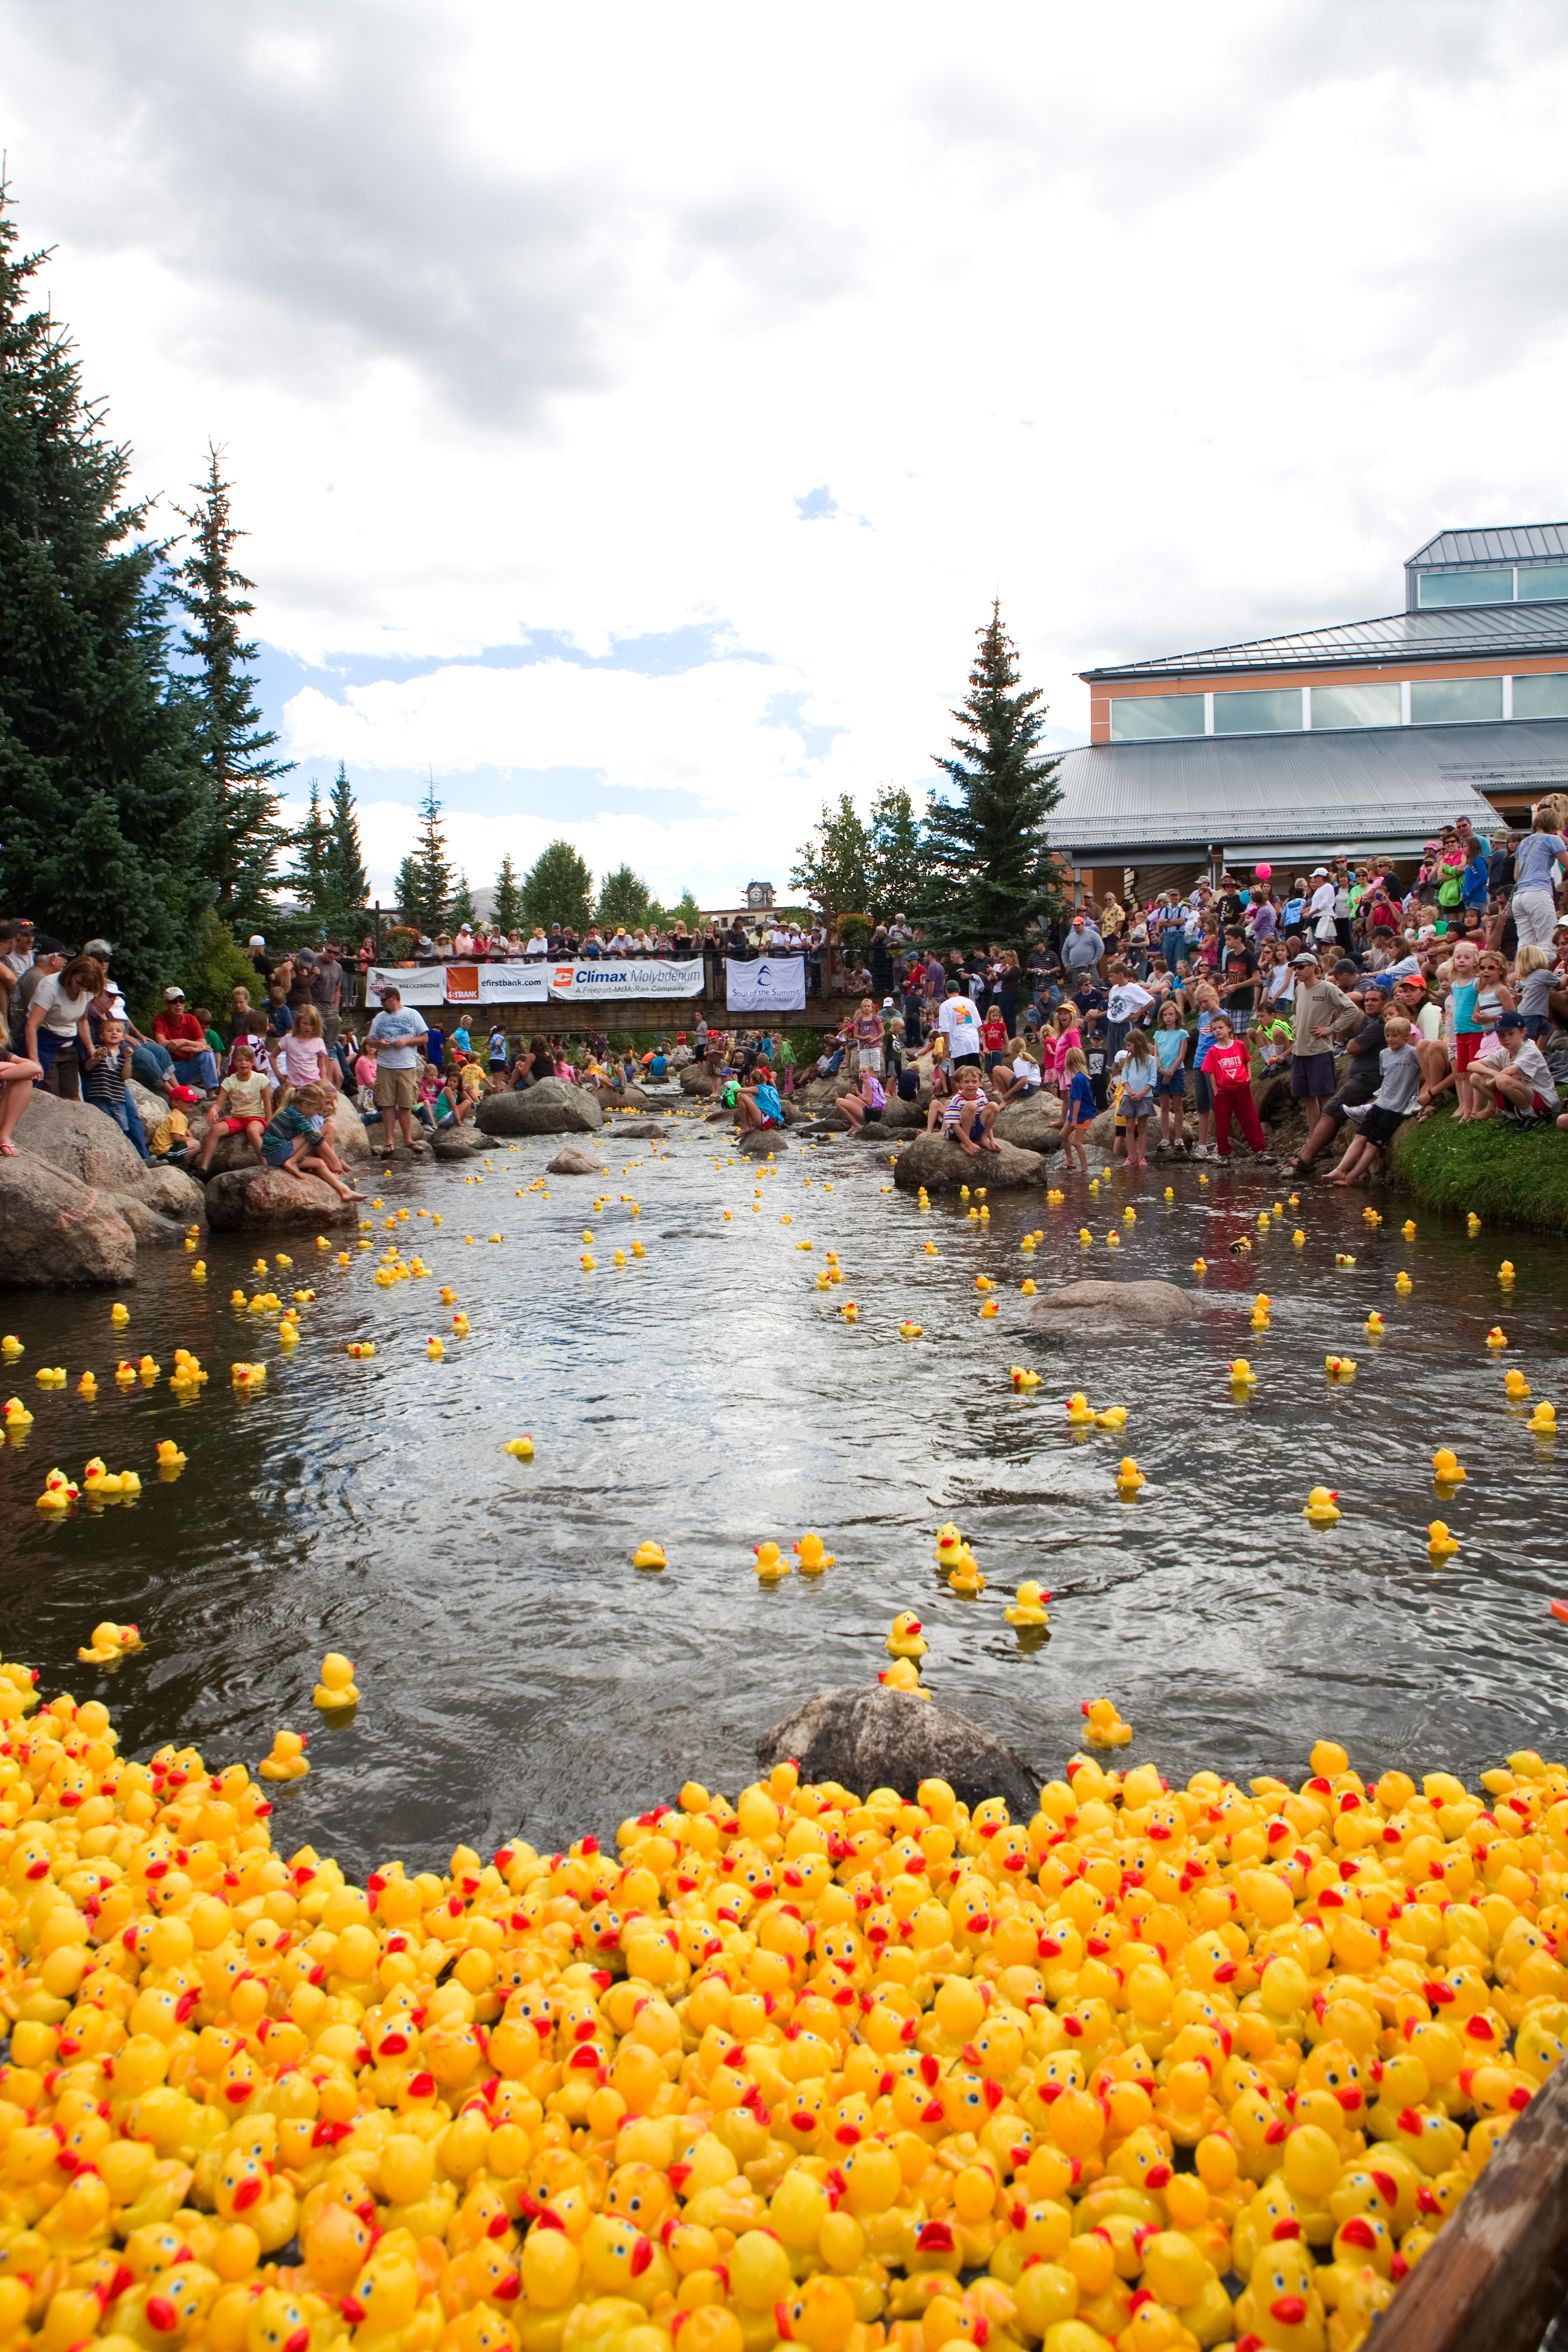 The Rubber Duck Race in Breckenridge